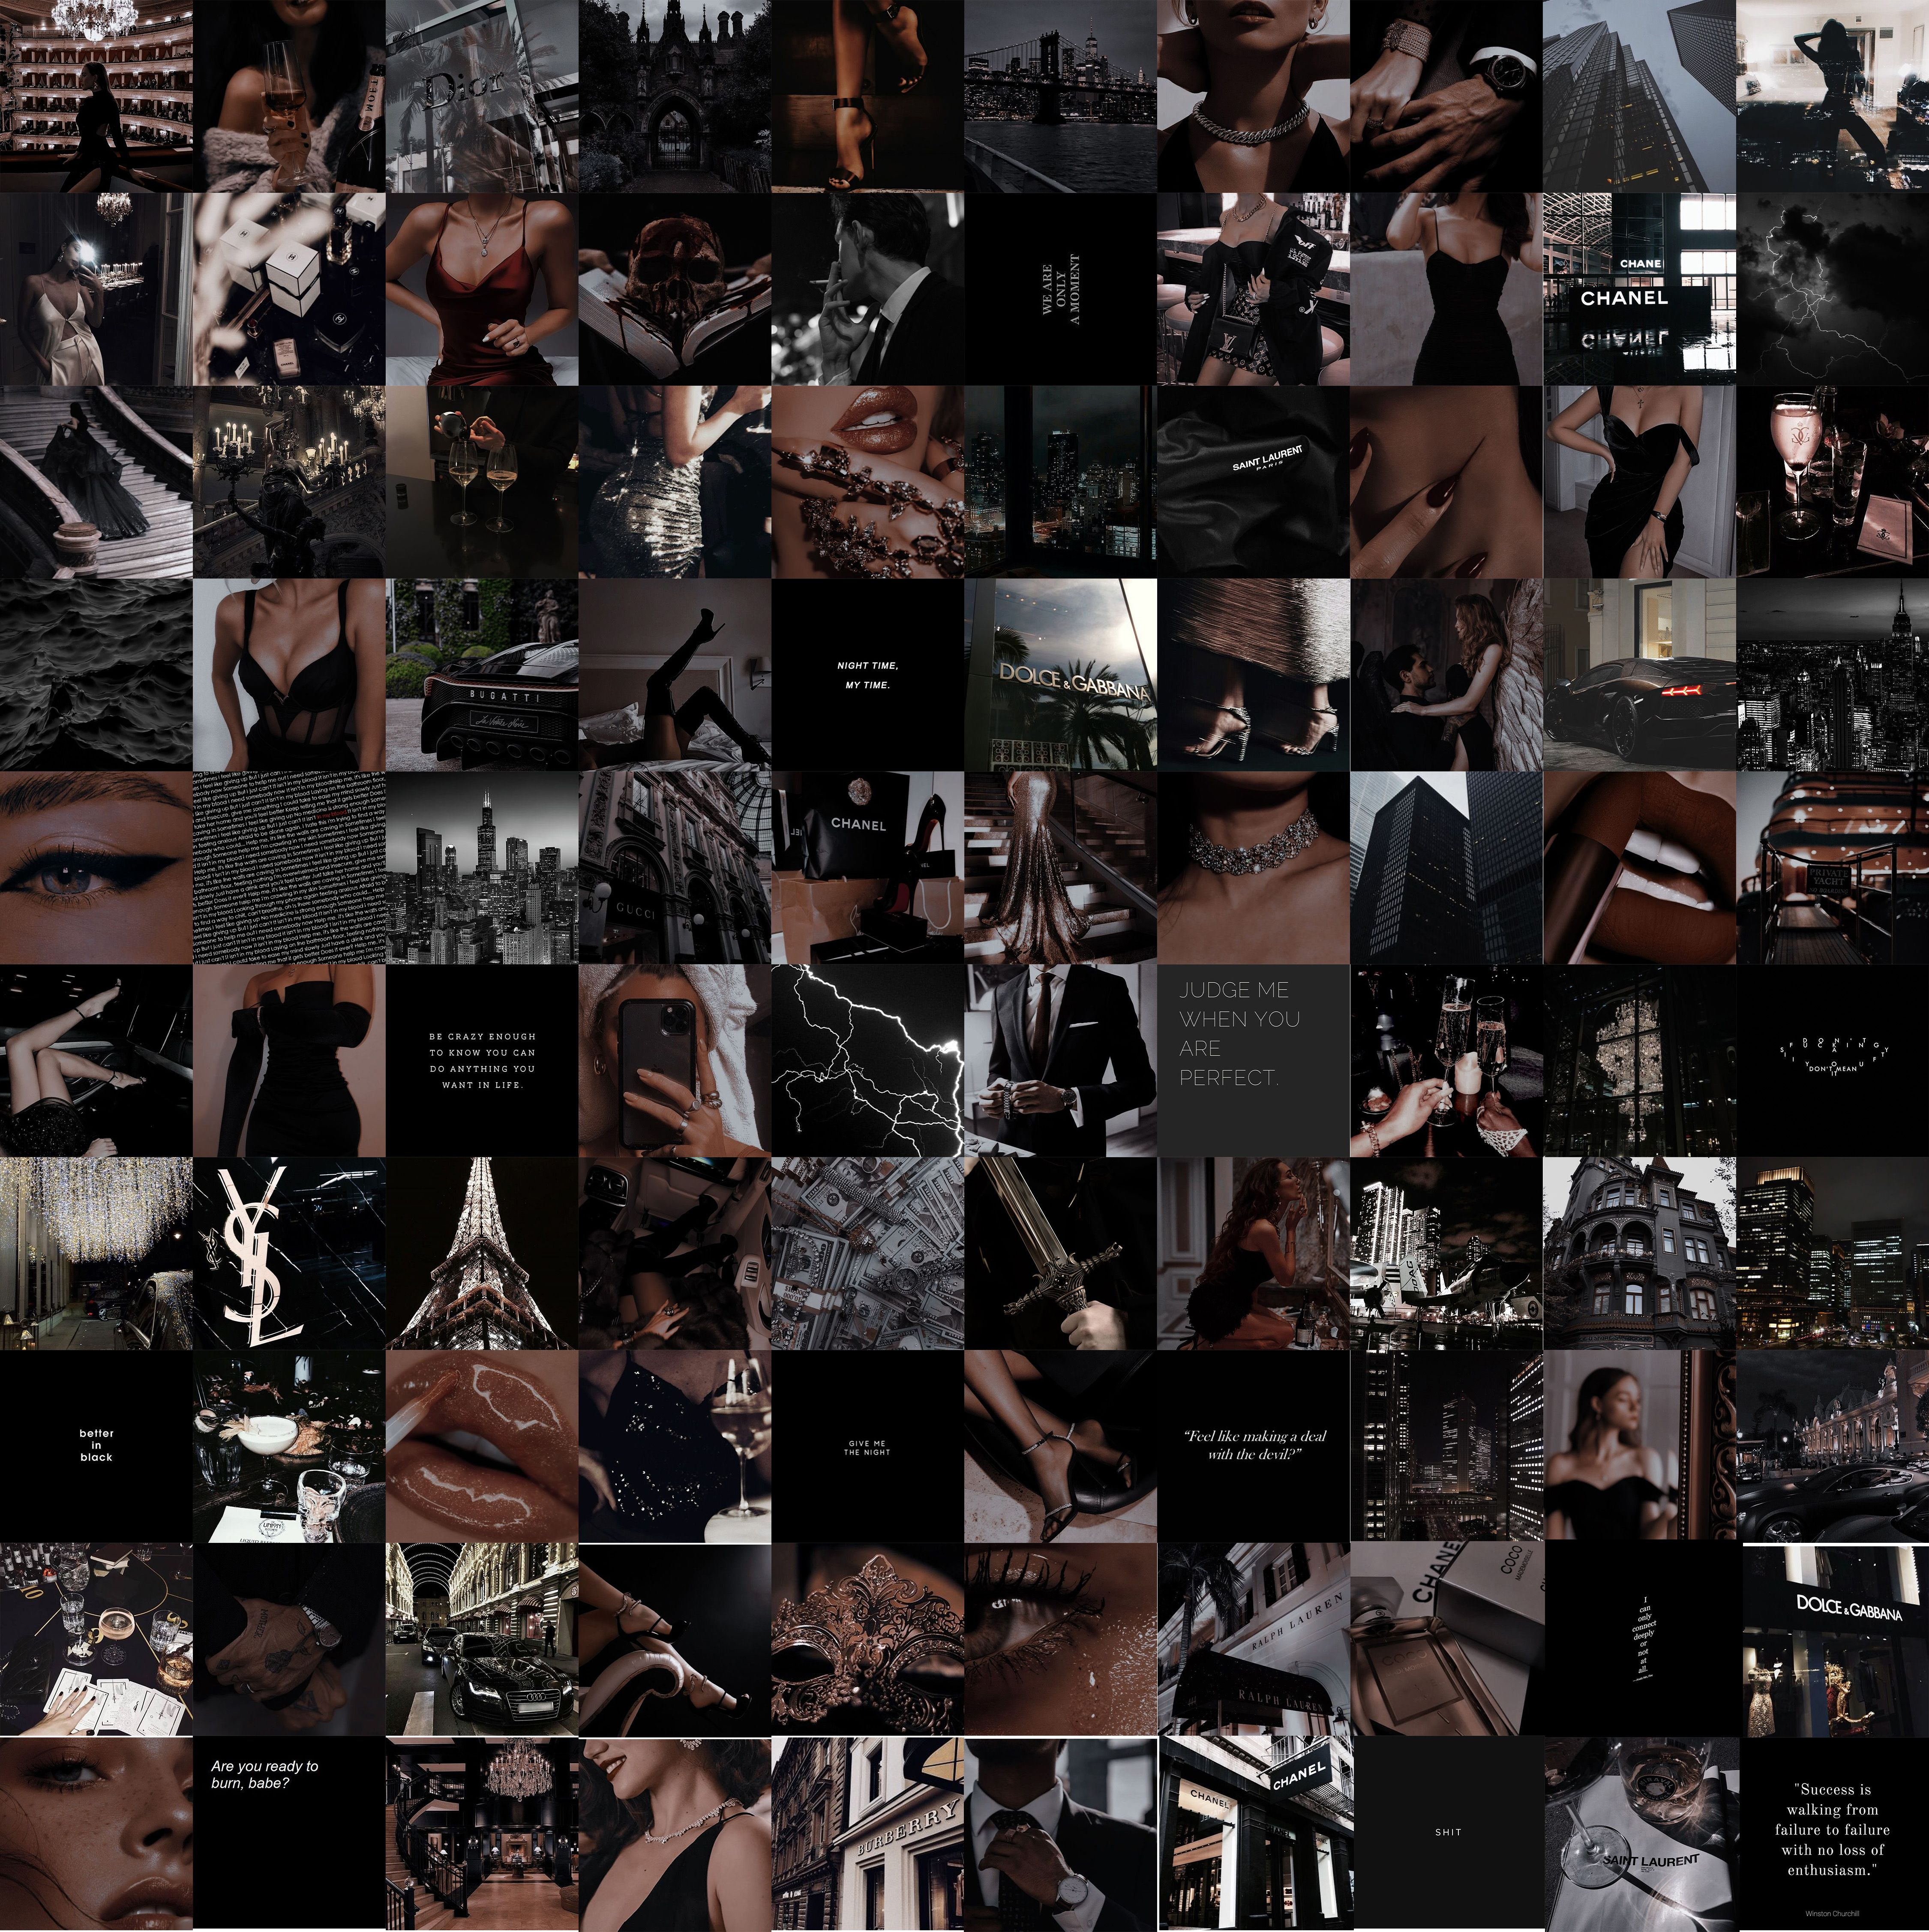 Boujee Dark Aesthetic Wall Collage Kit Tumblr Luxury Vibe Grunge Goth Decor